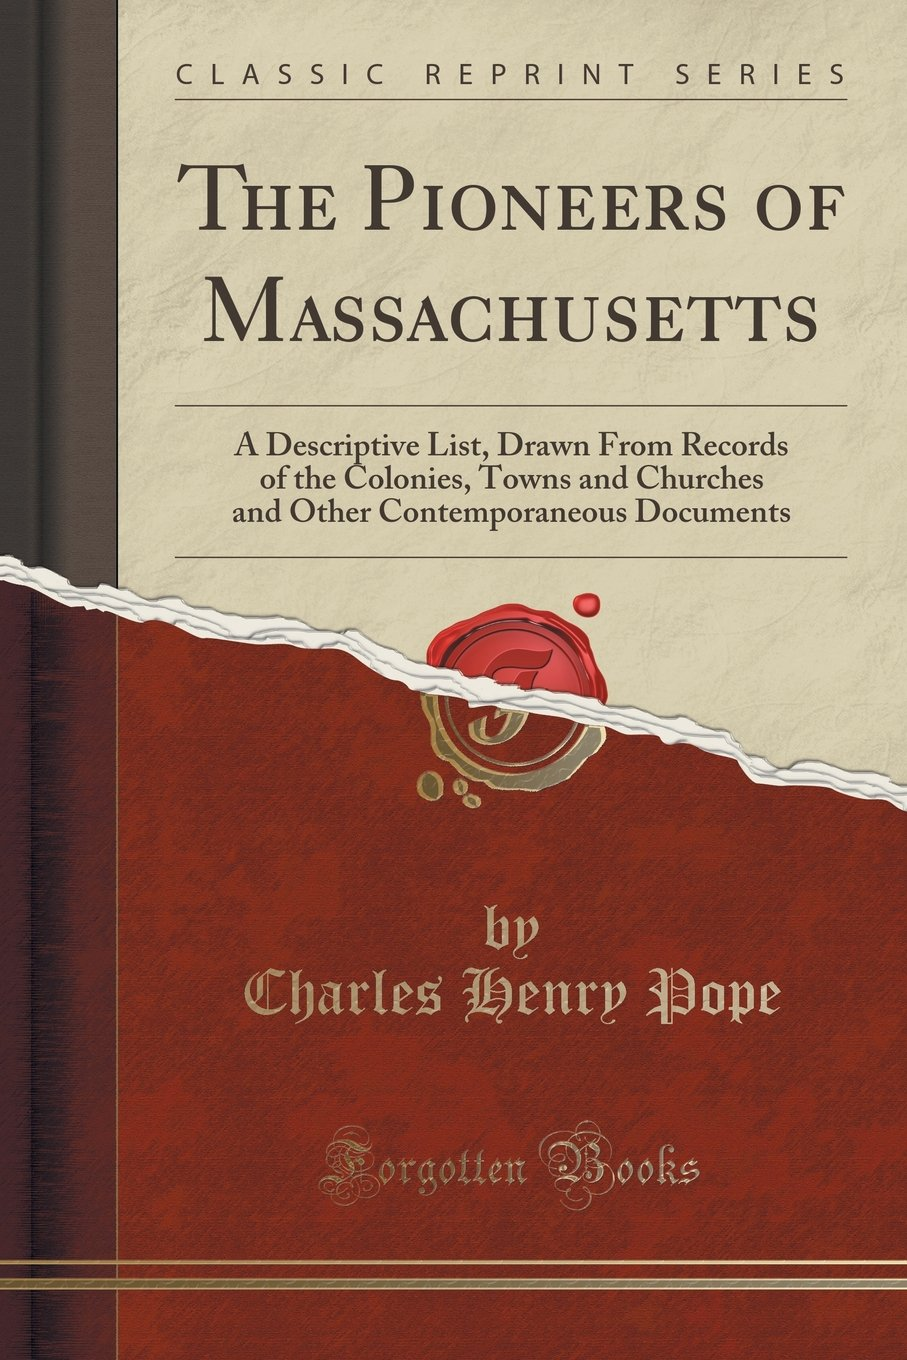 The Pioneers of Massachusetts: A Descriptive List, Drawn From Records of the Colonies, Towns and Churches and Other Contemporaneous Documents (Classic Reprint) pdf epub